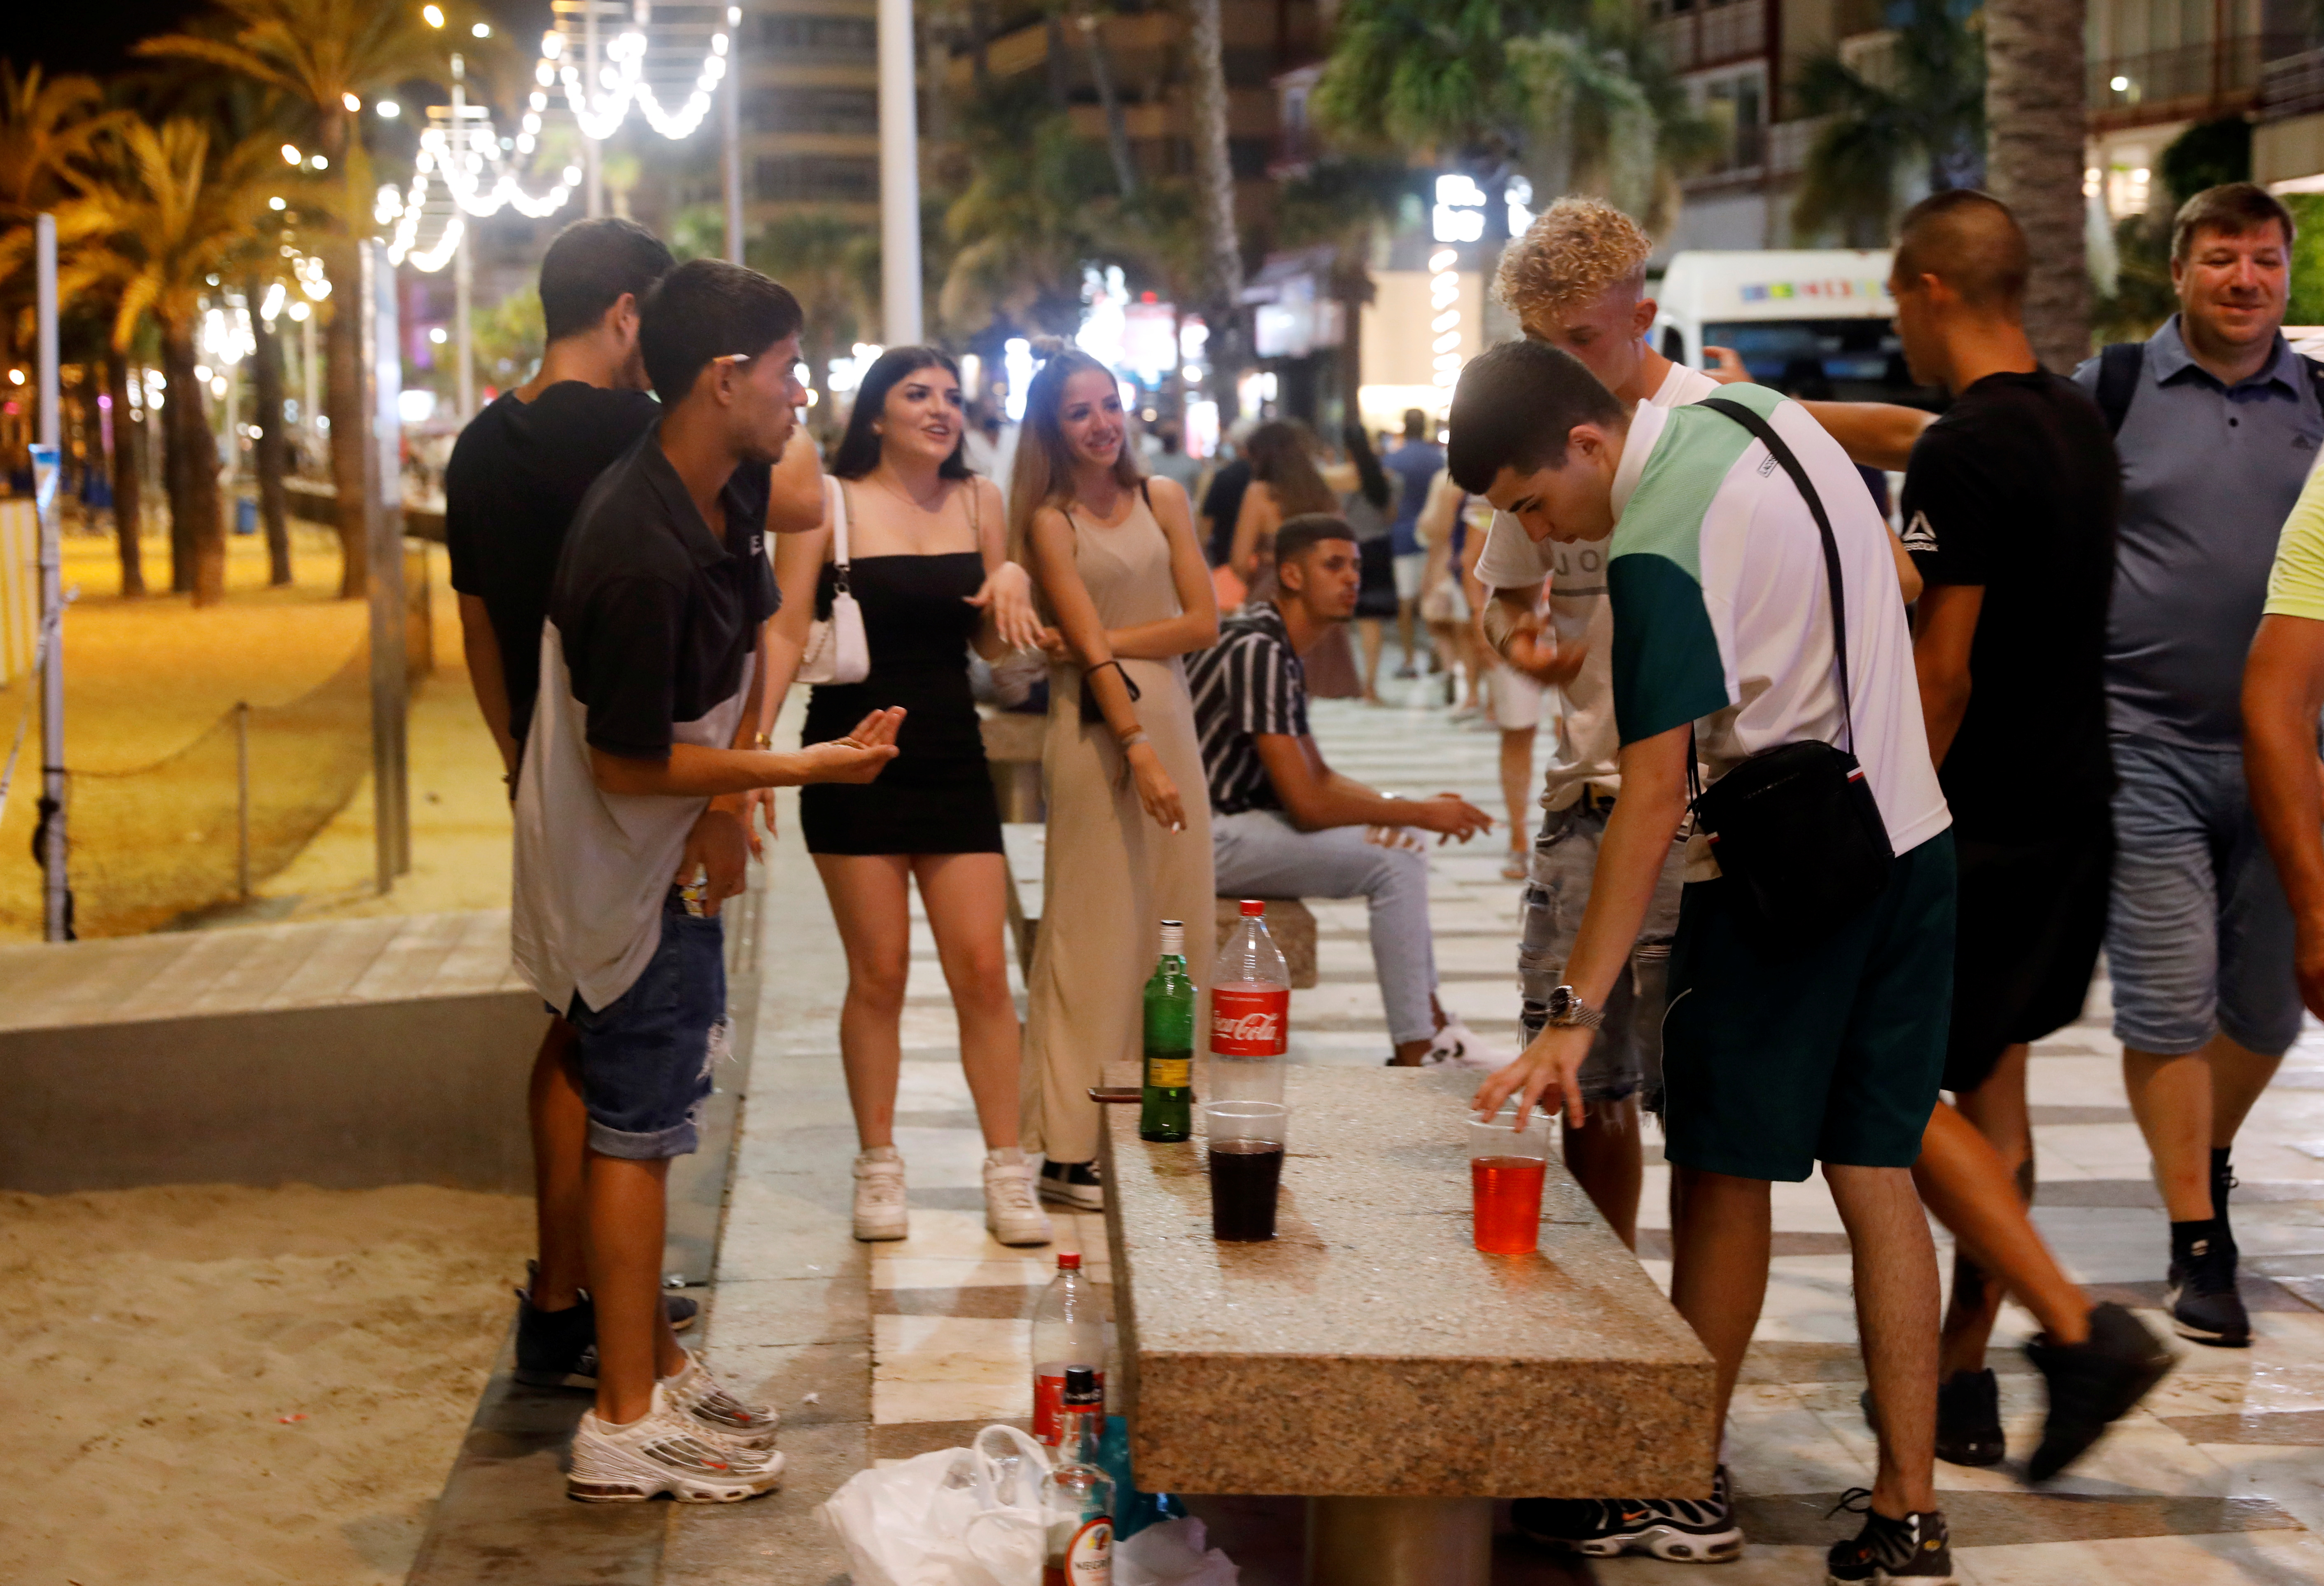 Youngsters party on Levante beach before closing for a night-time curfew which comes into effect tonight (01:00-06:00), as regional authorities in Valencia try to contain the rise of the coronavirus disease (COVID-19), in Benidorm, Spain July 25, 2021. REUTERS/Eva Manez